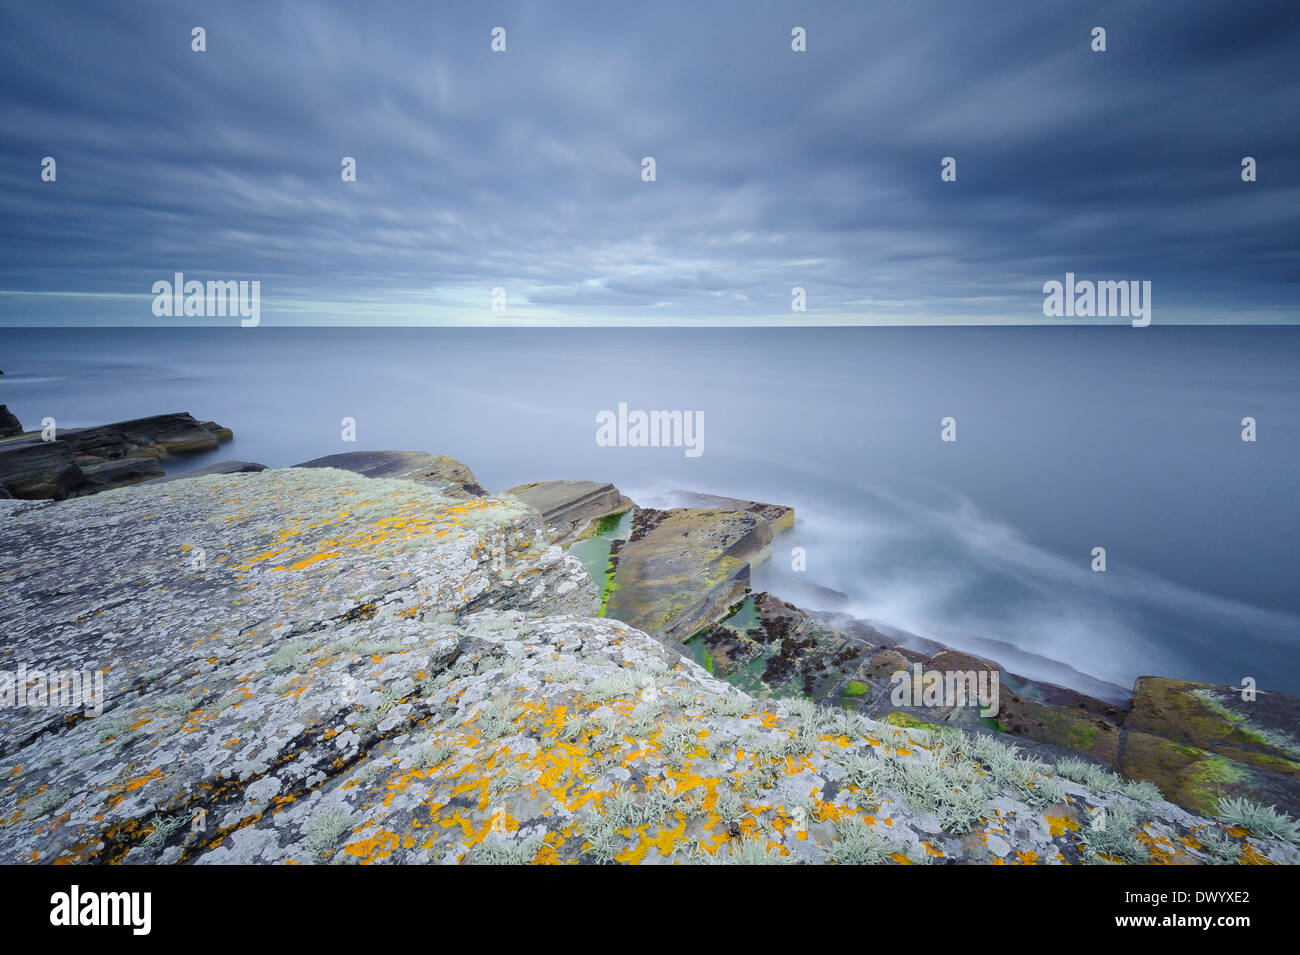 Long exposure picture of sandstone rocks and the sea on the coast at Wick, Caithness, north Scotland. - Stock Image